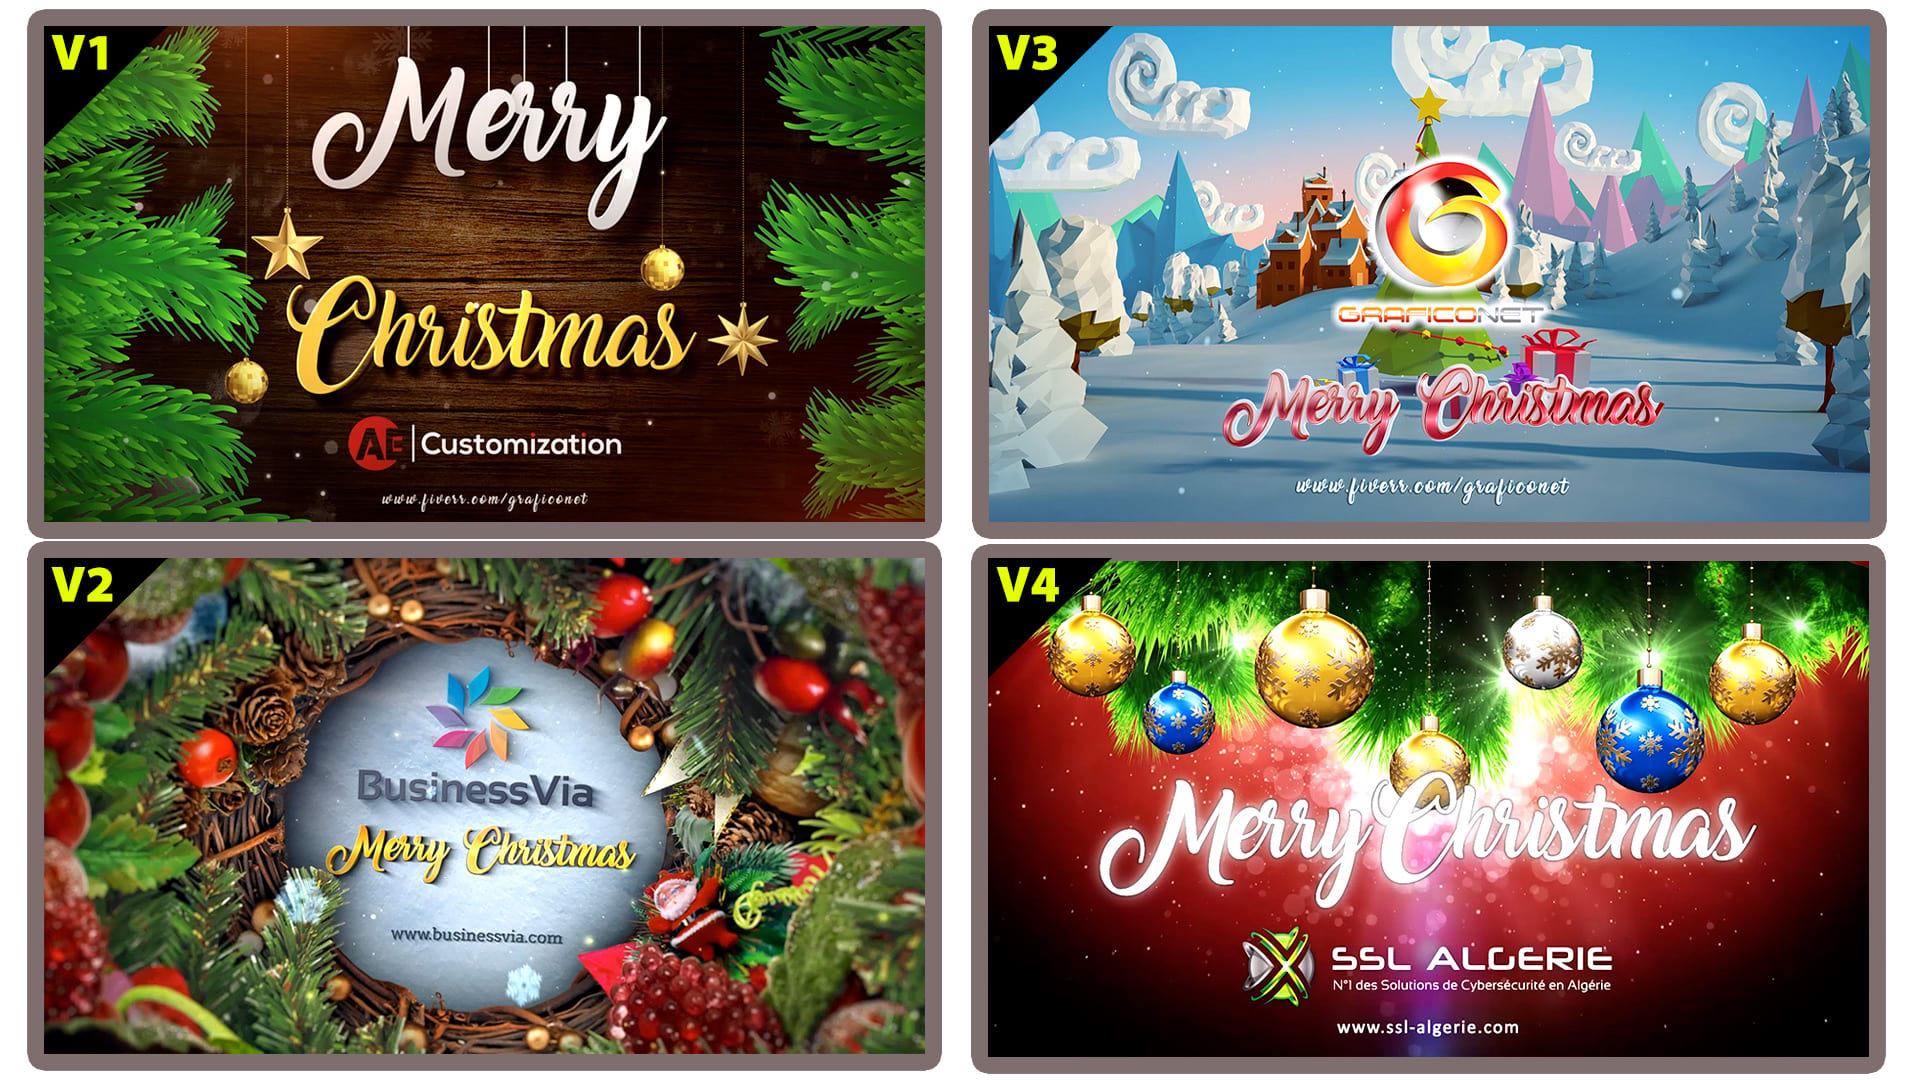 Make merry christmas video greeting by Graficonet